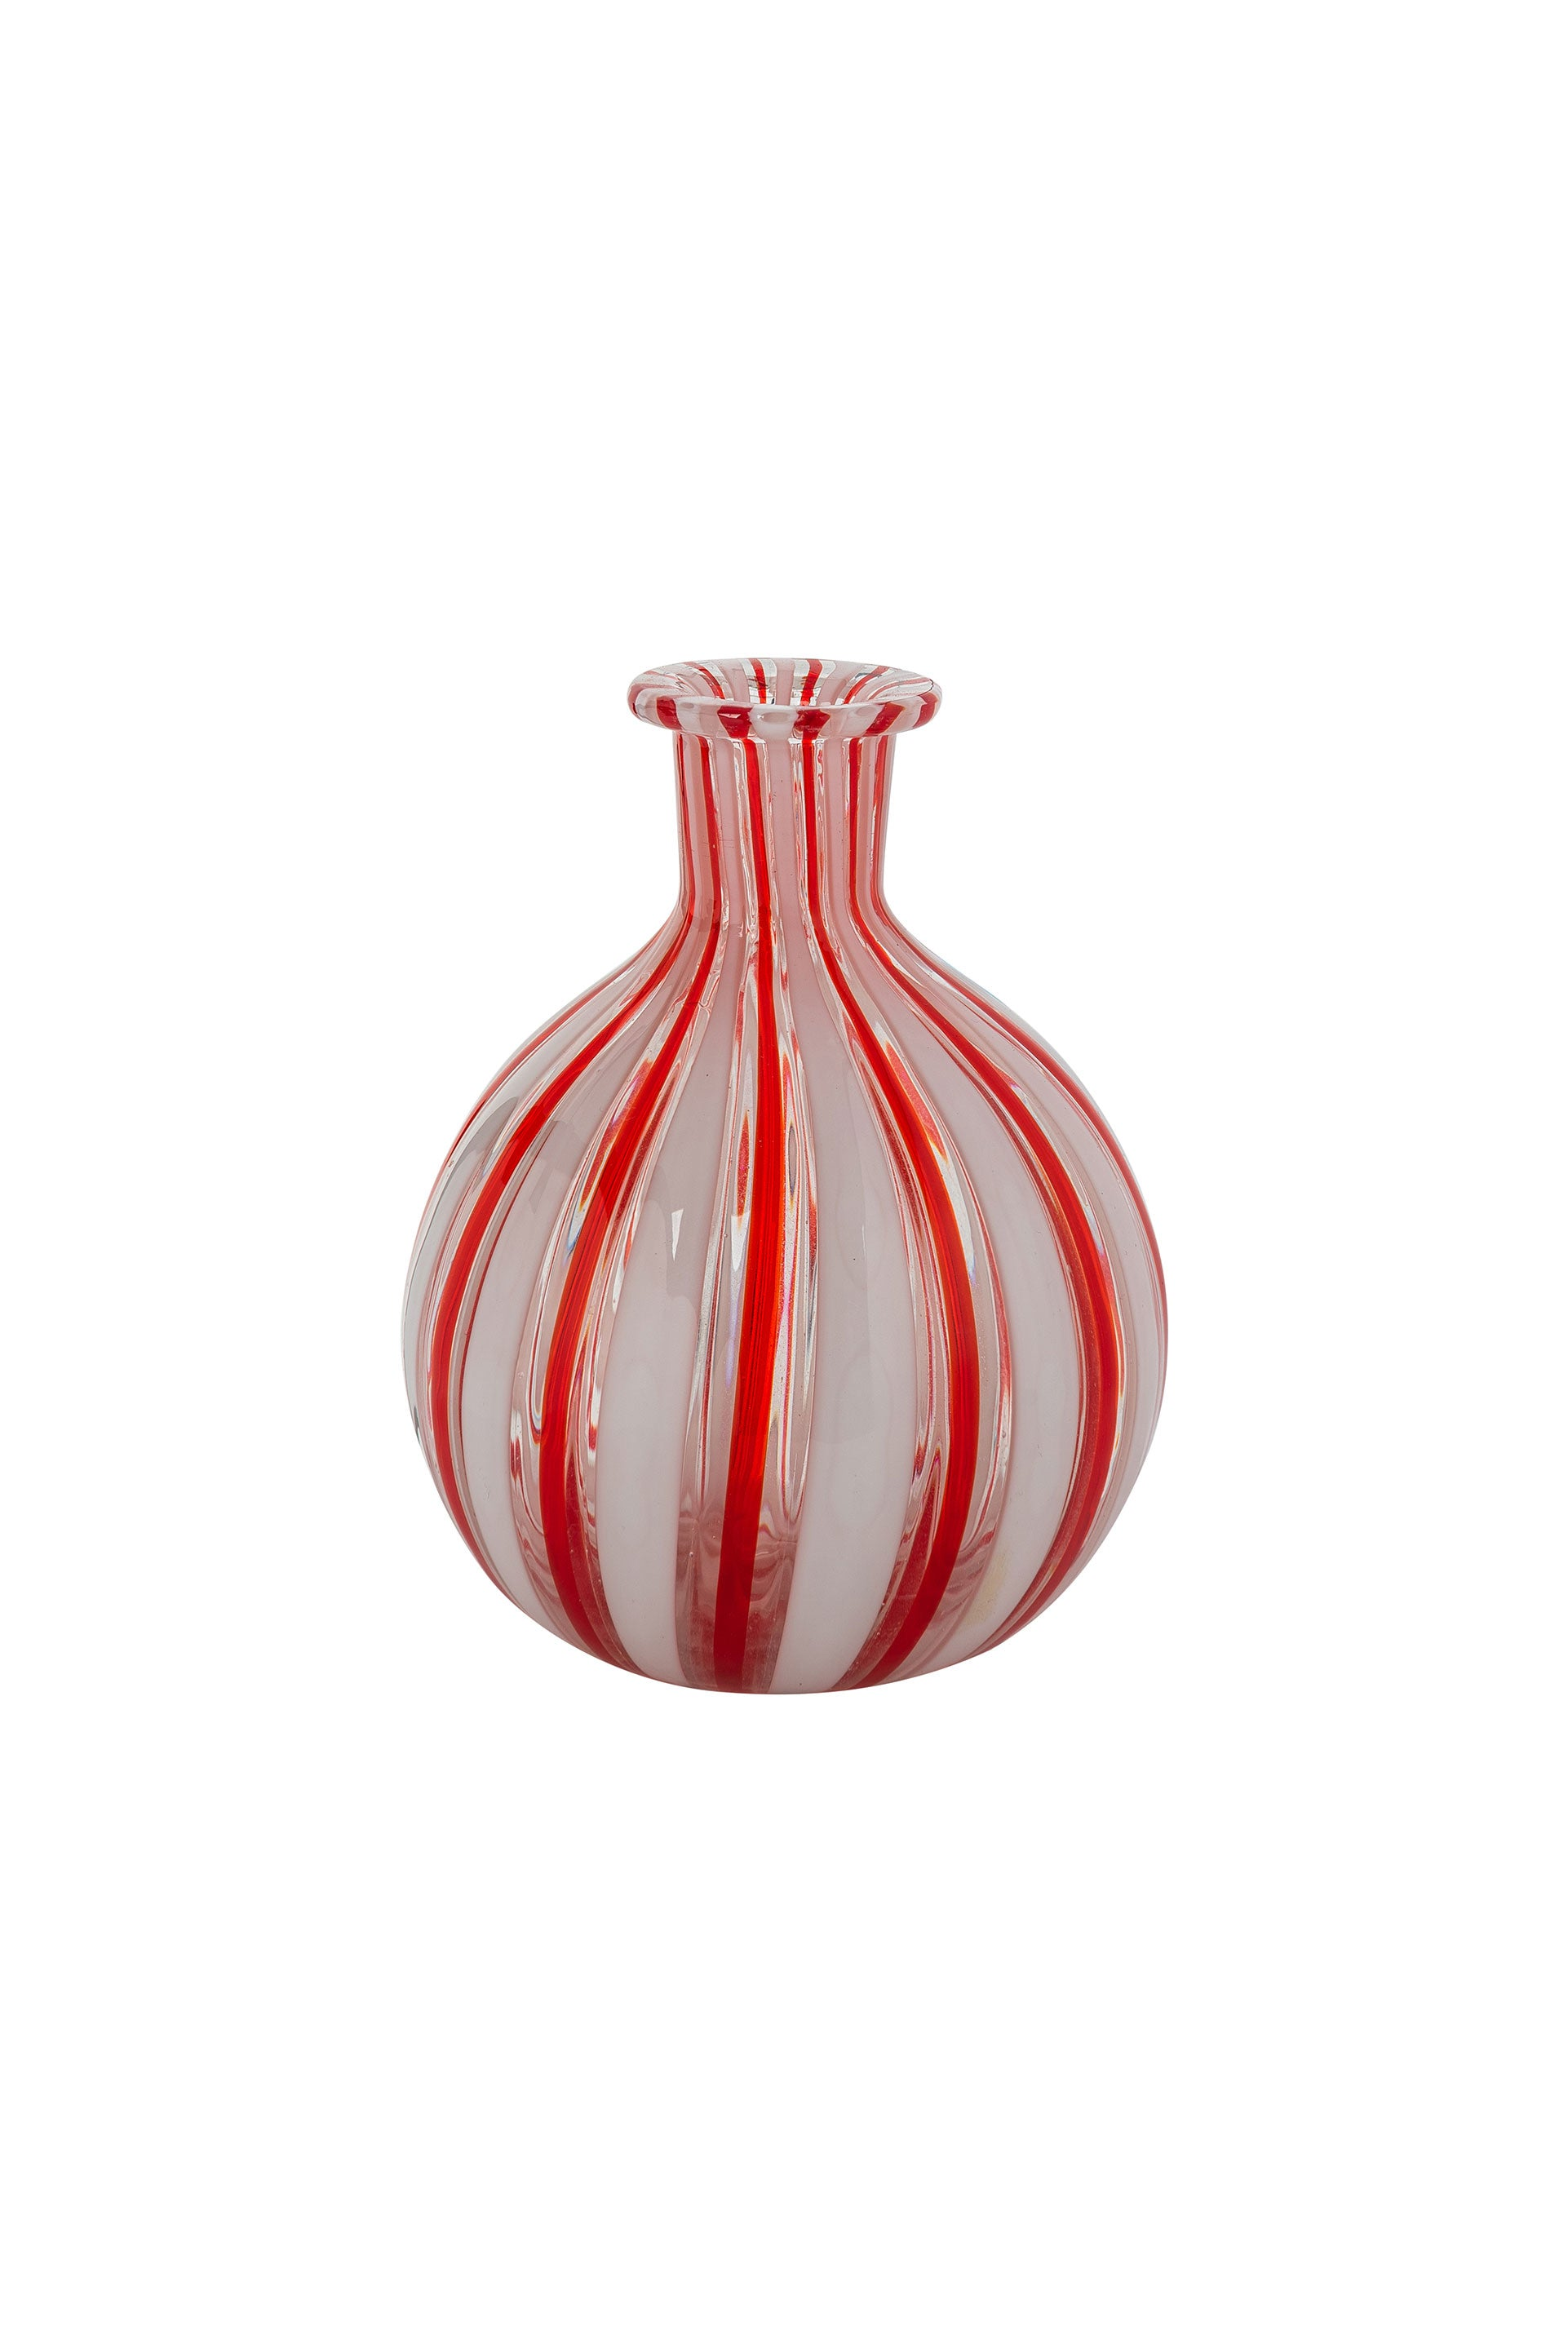 Vintage Red & White Striped Murano Bud Vase